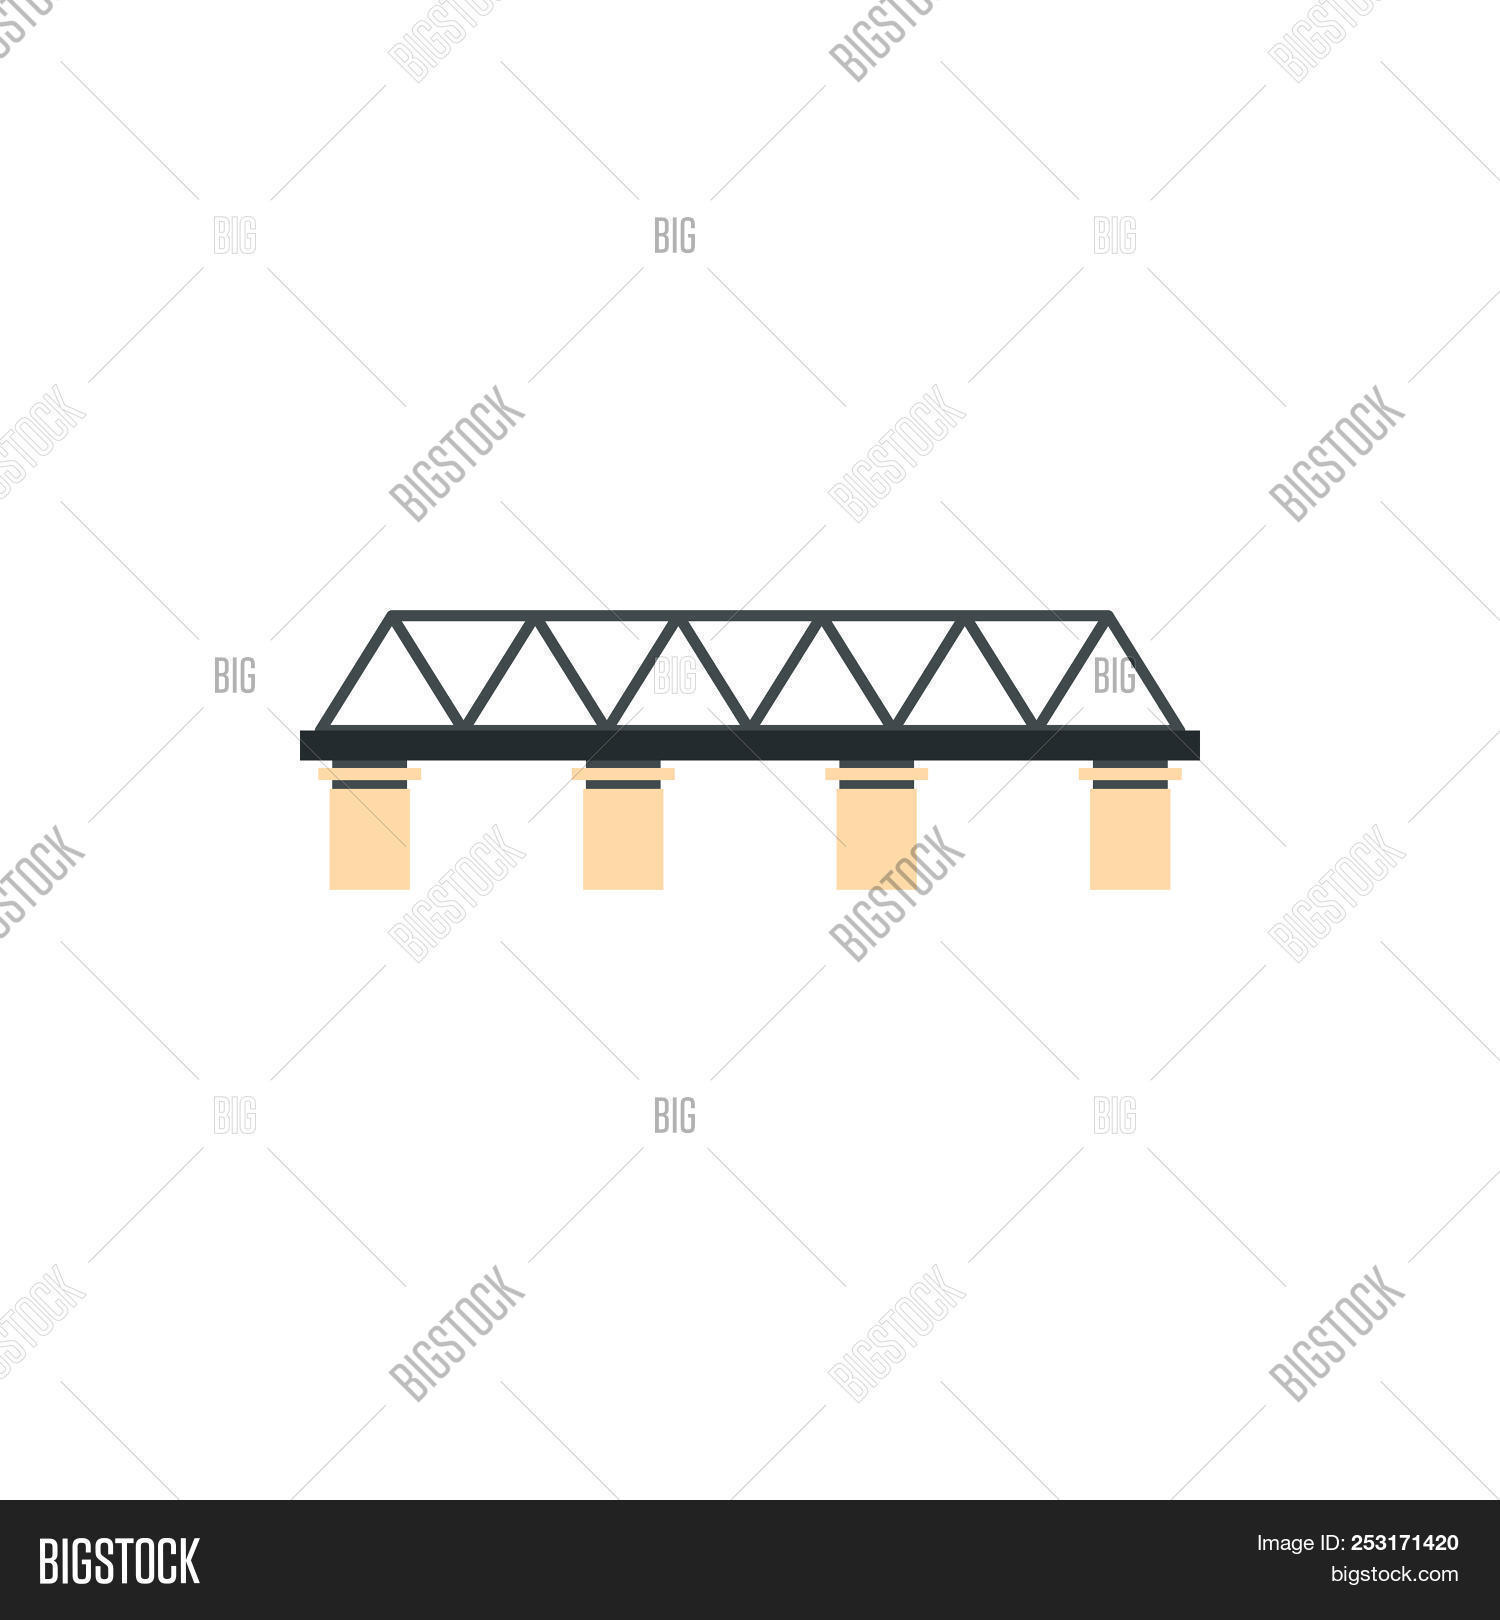 truss style diagram rv converter charger wiring bridge icon flat image photo free trial bigstock in on a white background